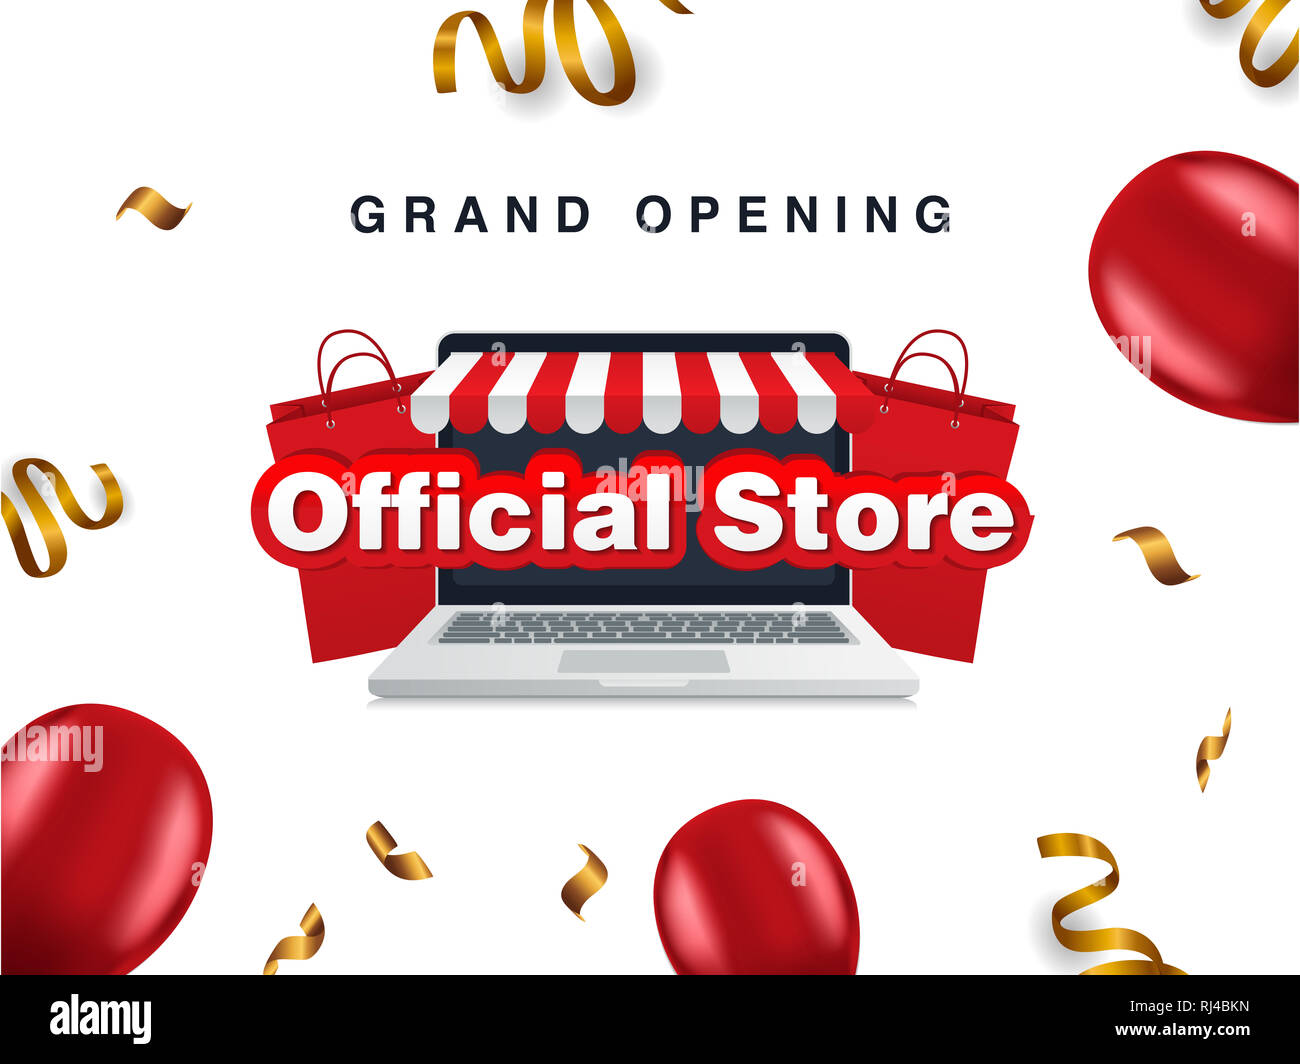 grand opening official store, sale bag, online shop